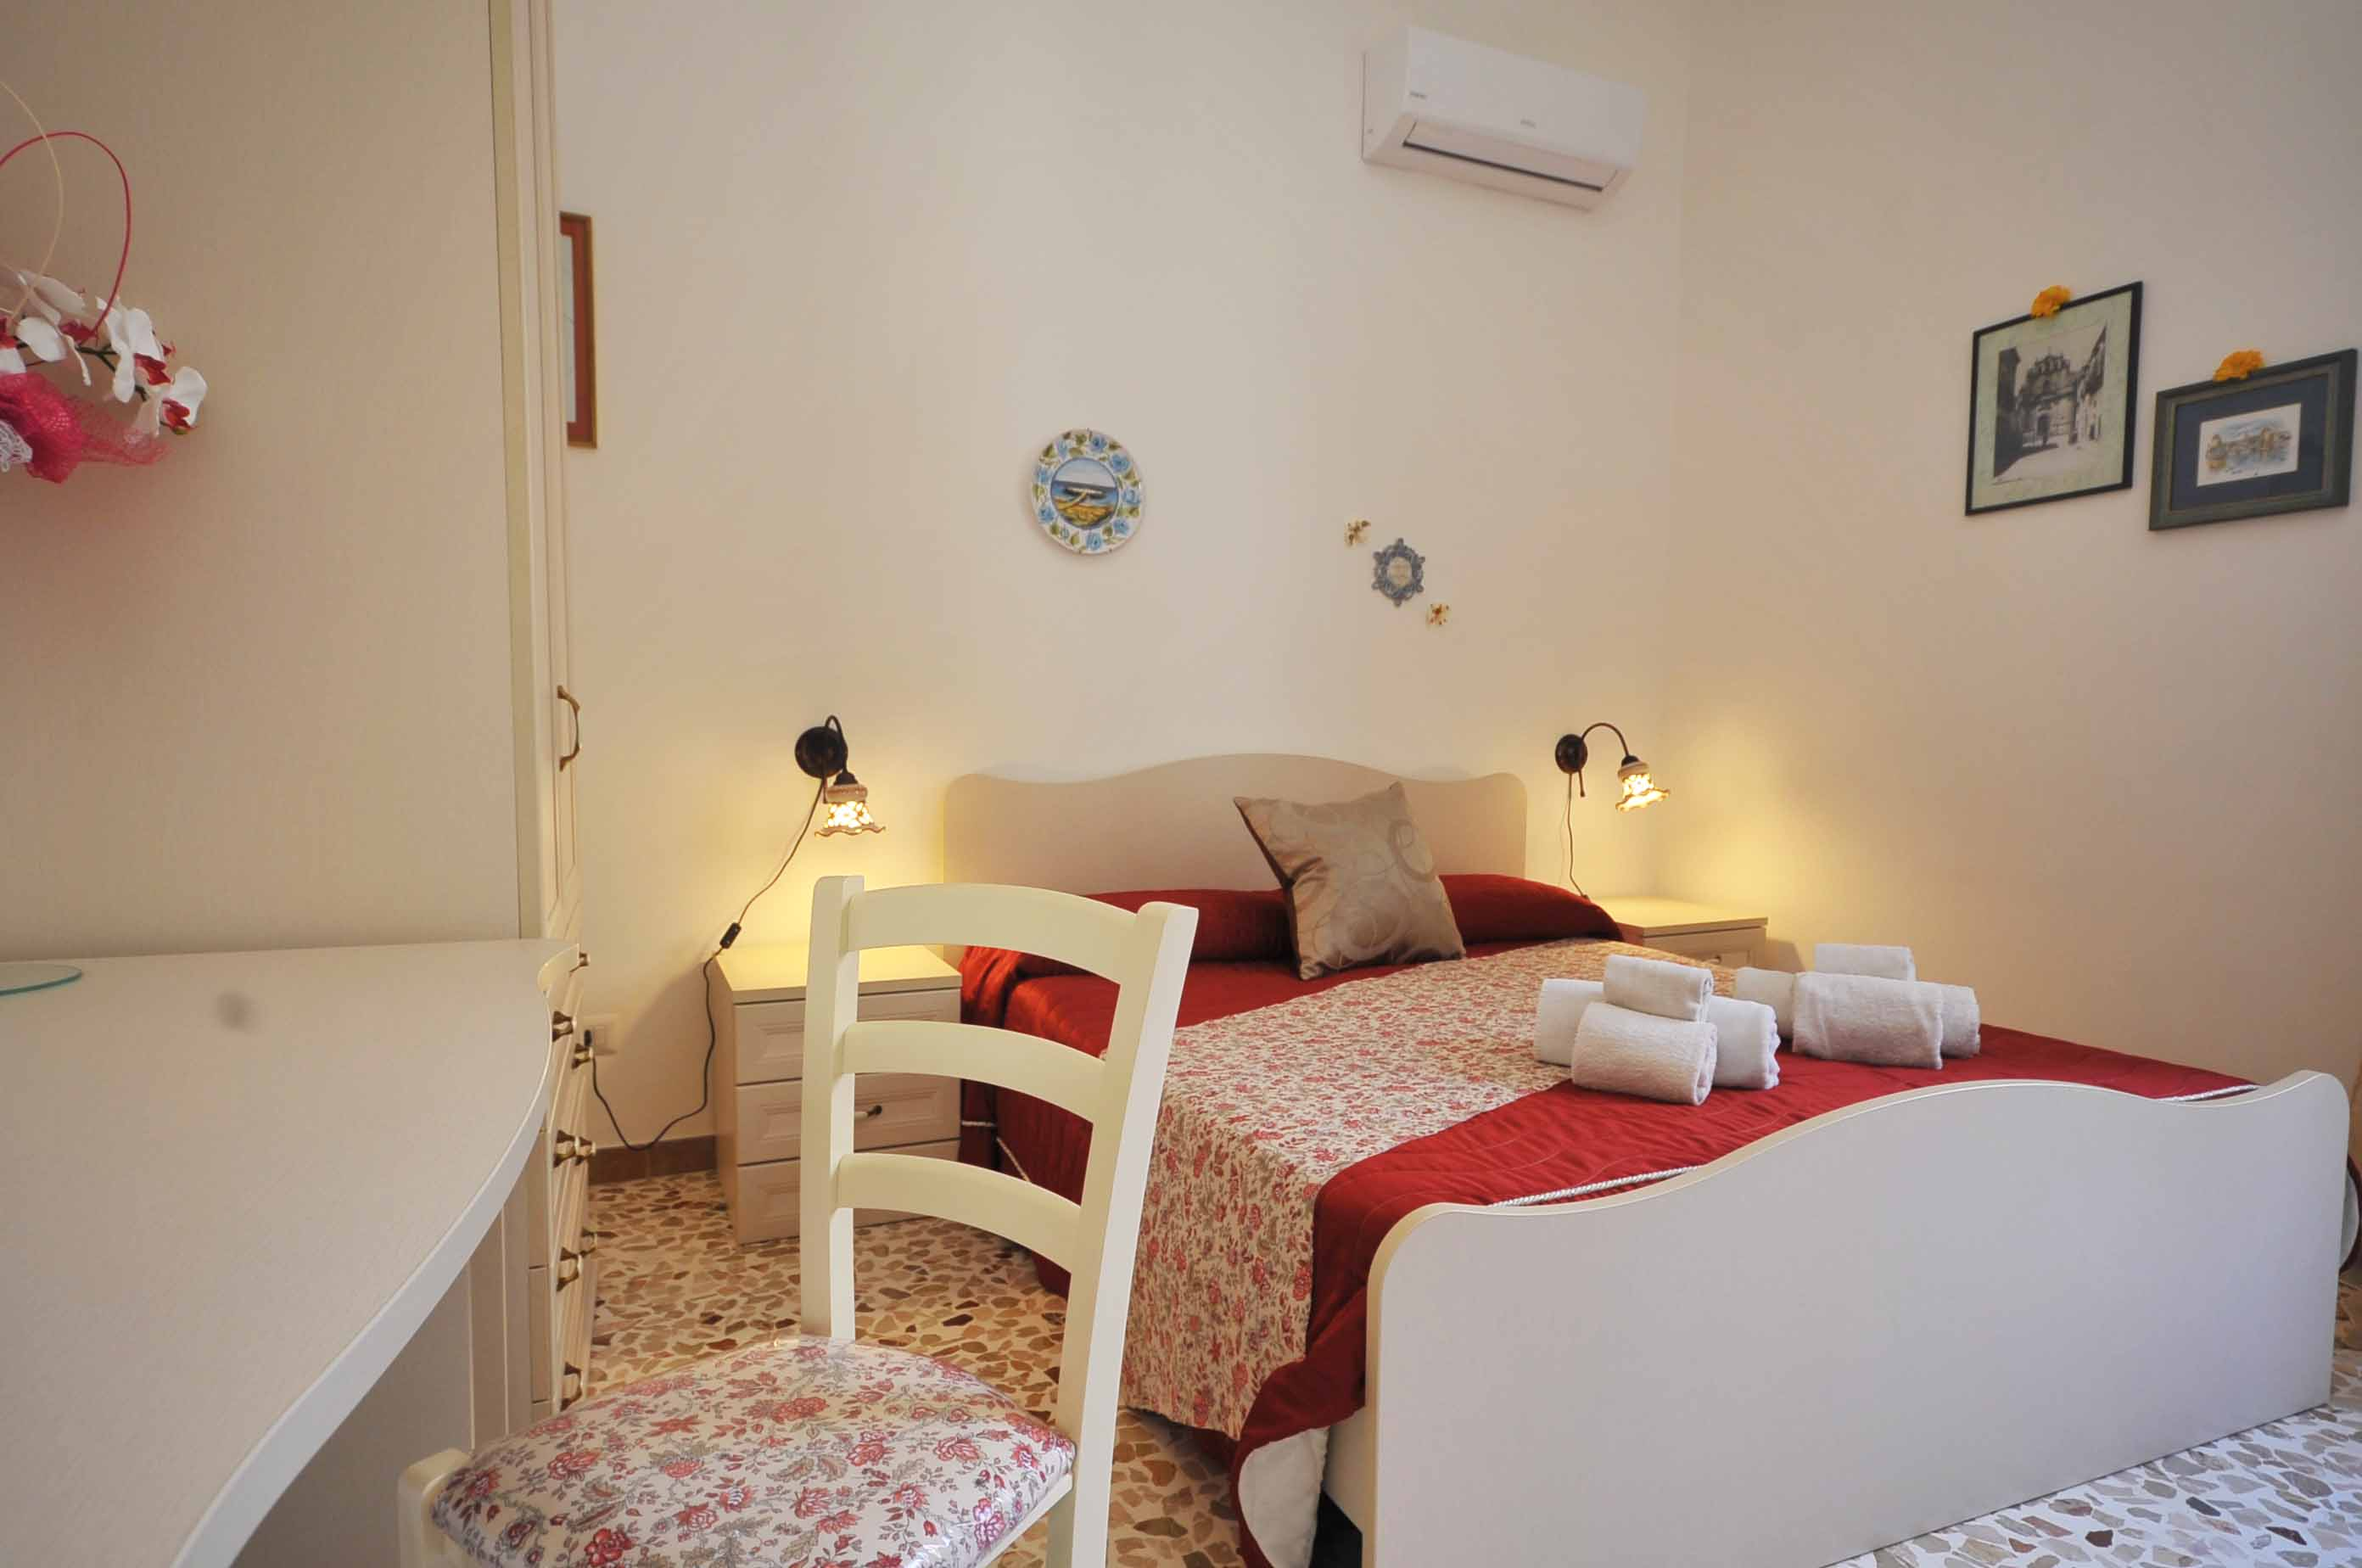 Athena_camera_familiare_B&B_Avola_siracusa_bed_and_breakfast_3